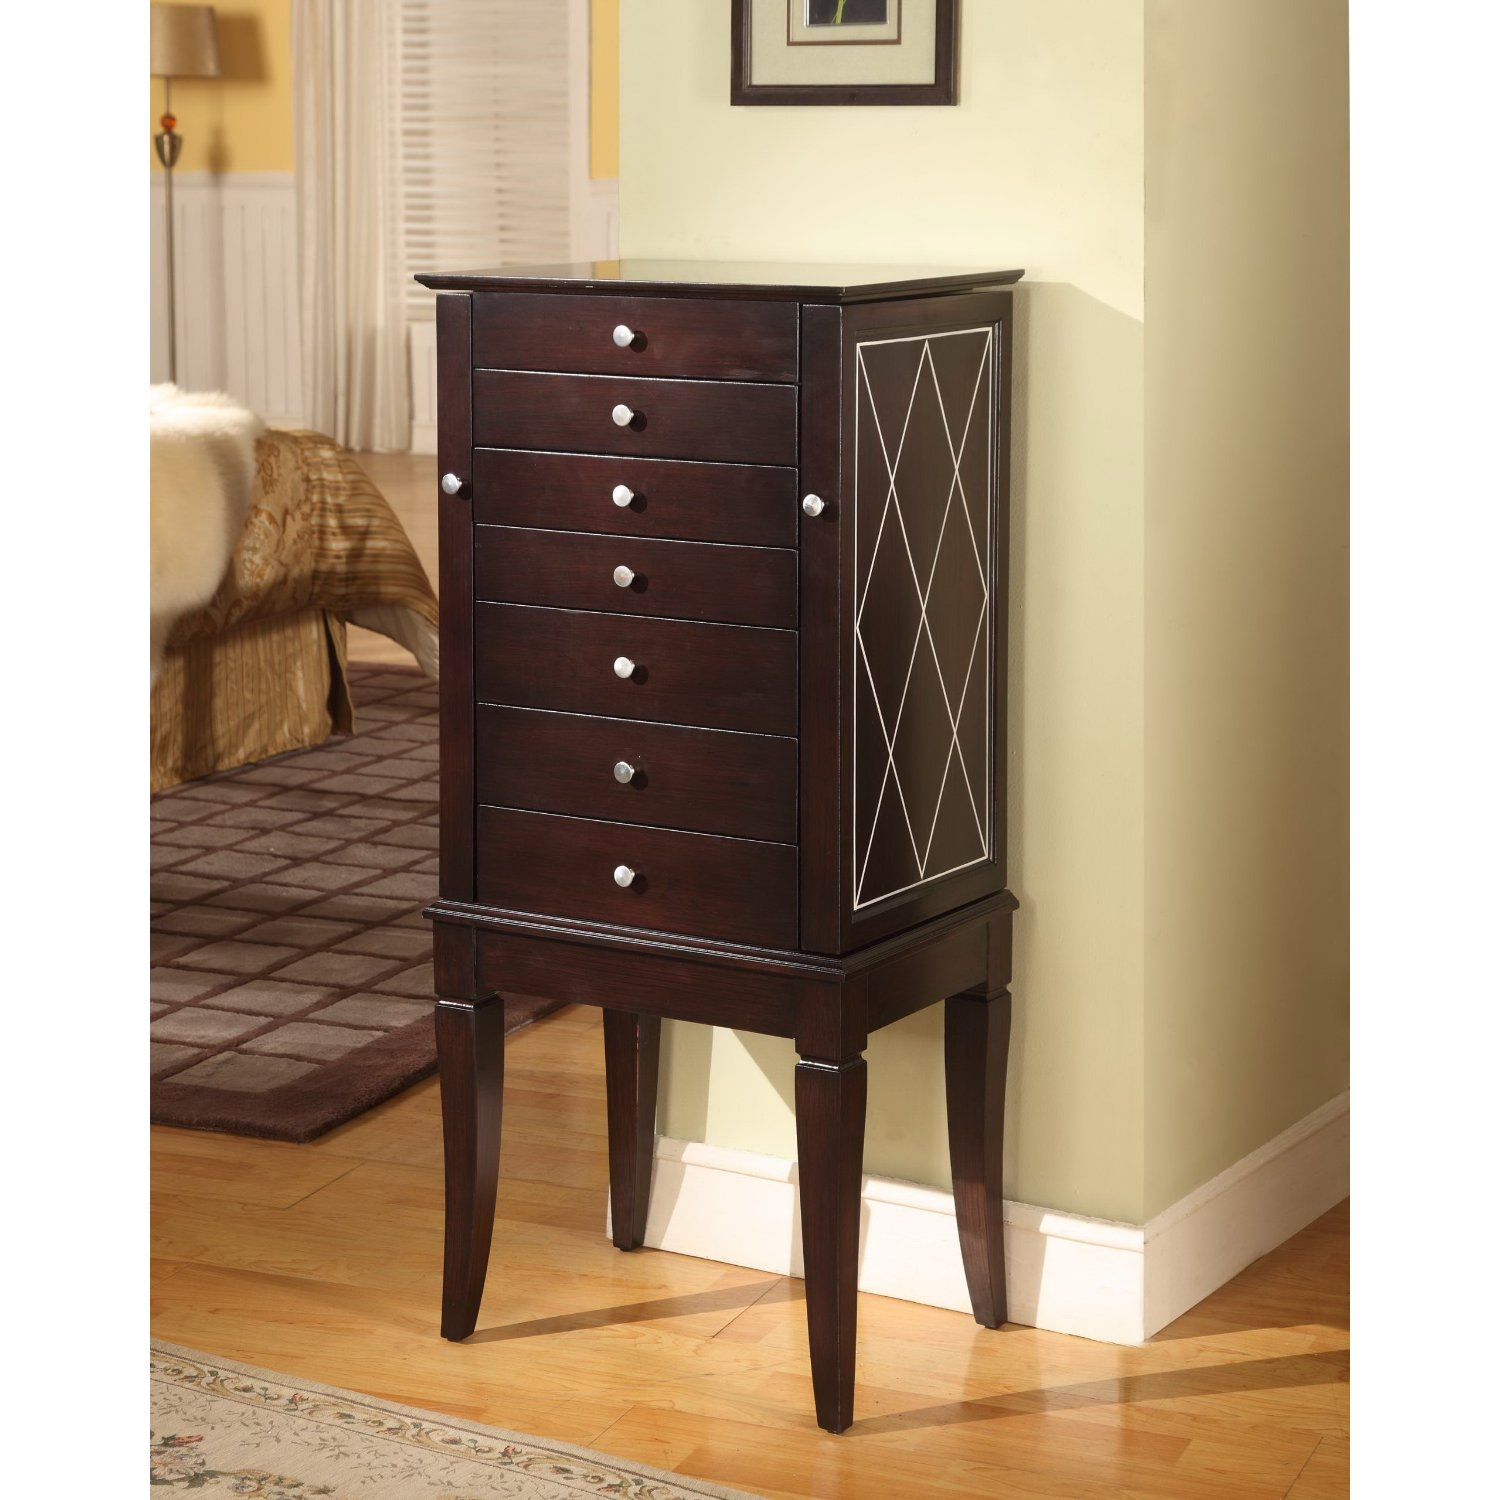 furniture bedroom furniture armoire designer armoire. Black Bedroom Furniture Sets. Home Design Ideas